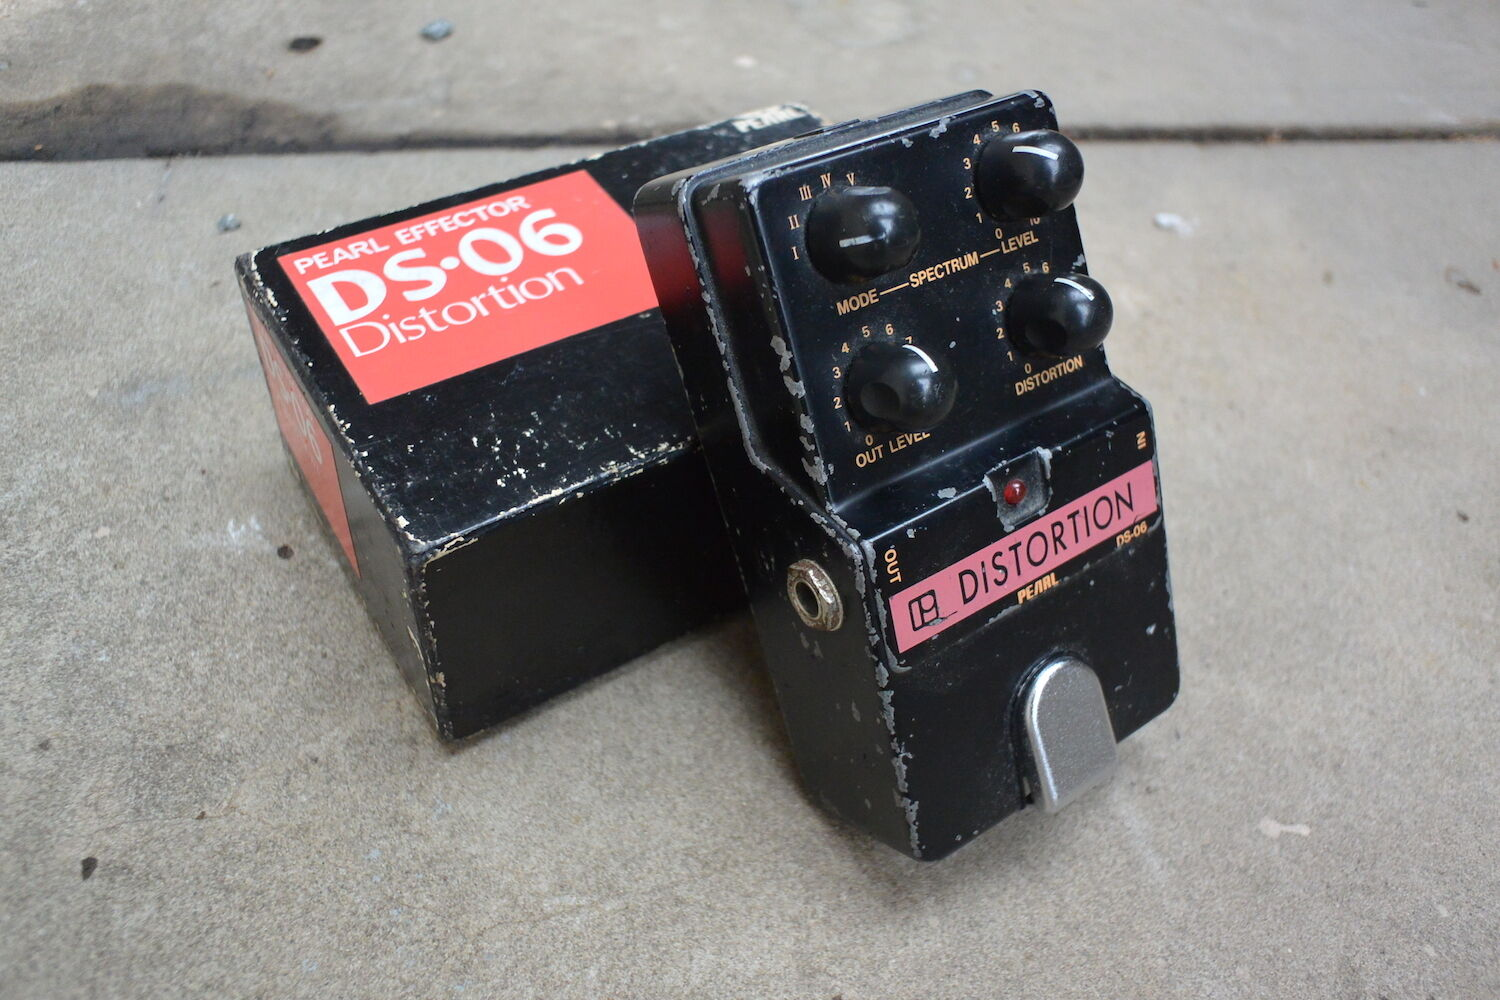 1980's Pearl DS-06 Distortion MIJ Japan Vintage Effects Pedal w Box